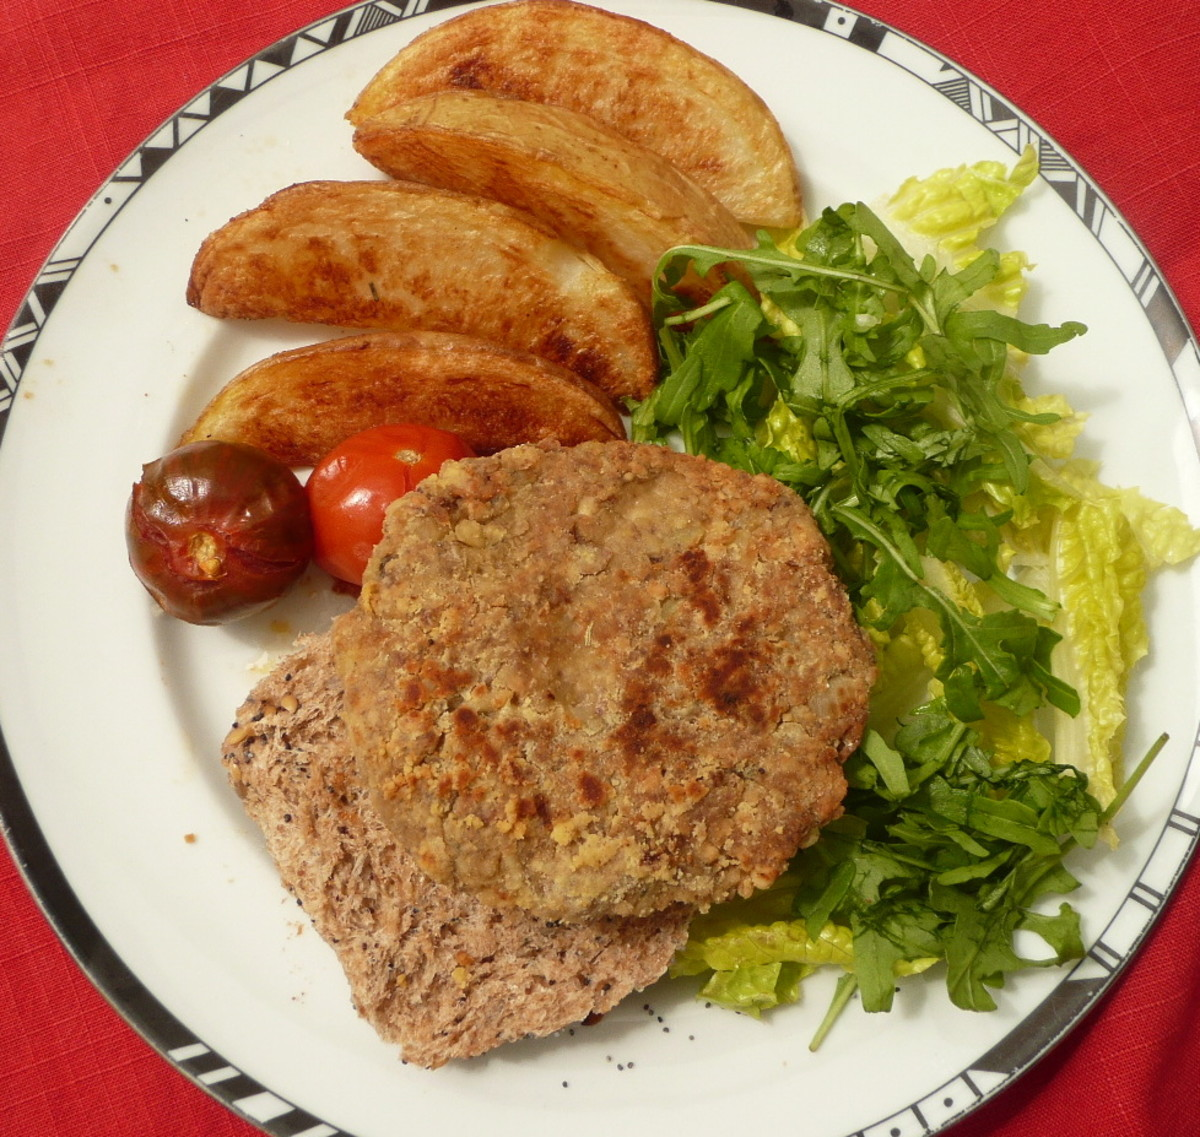 A gluten-free nut and shiitake mushroom burger, which can also be made vegan.